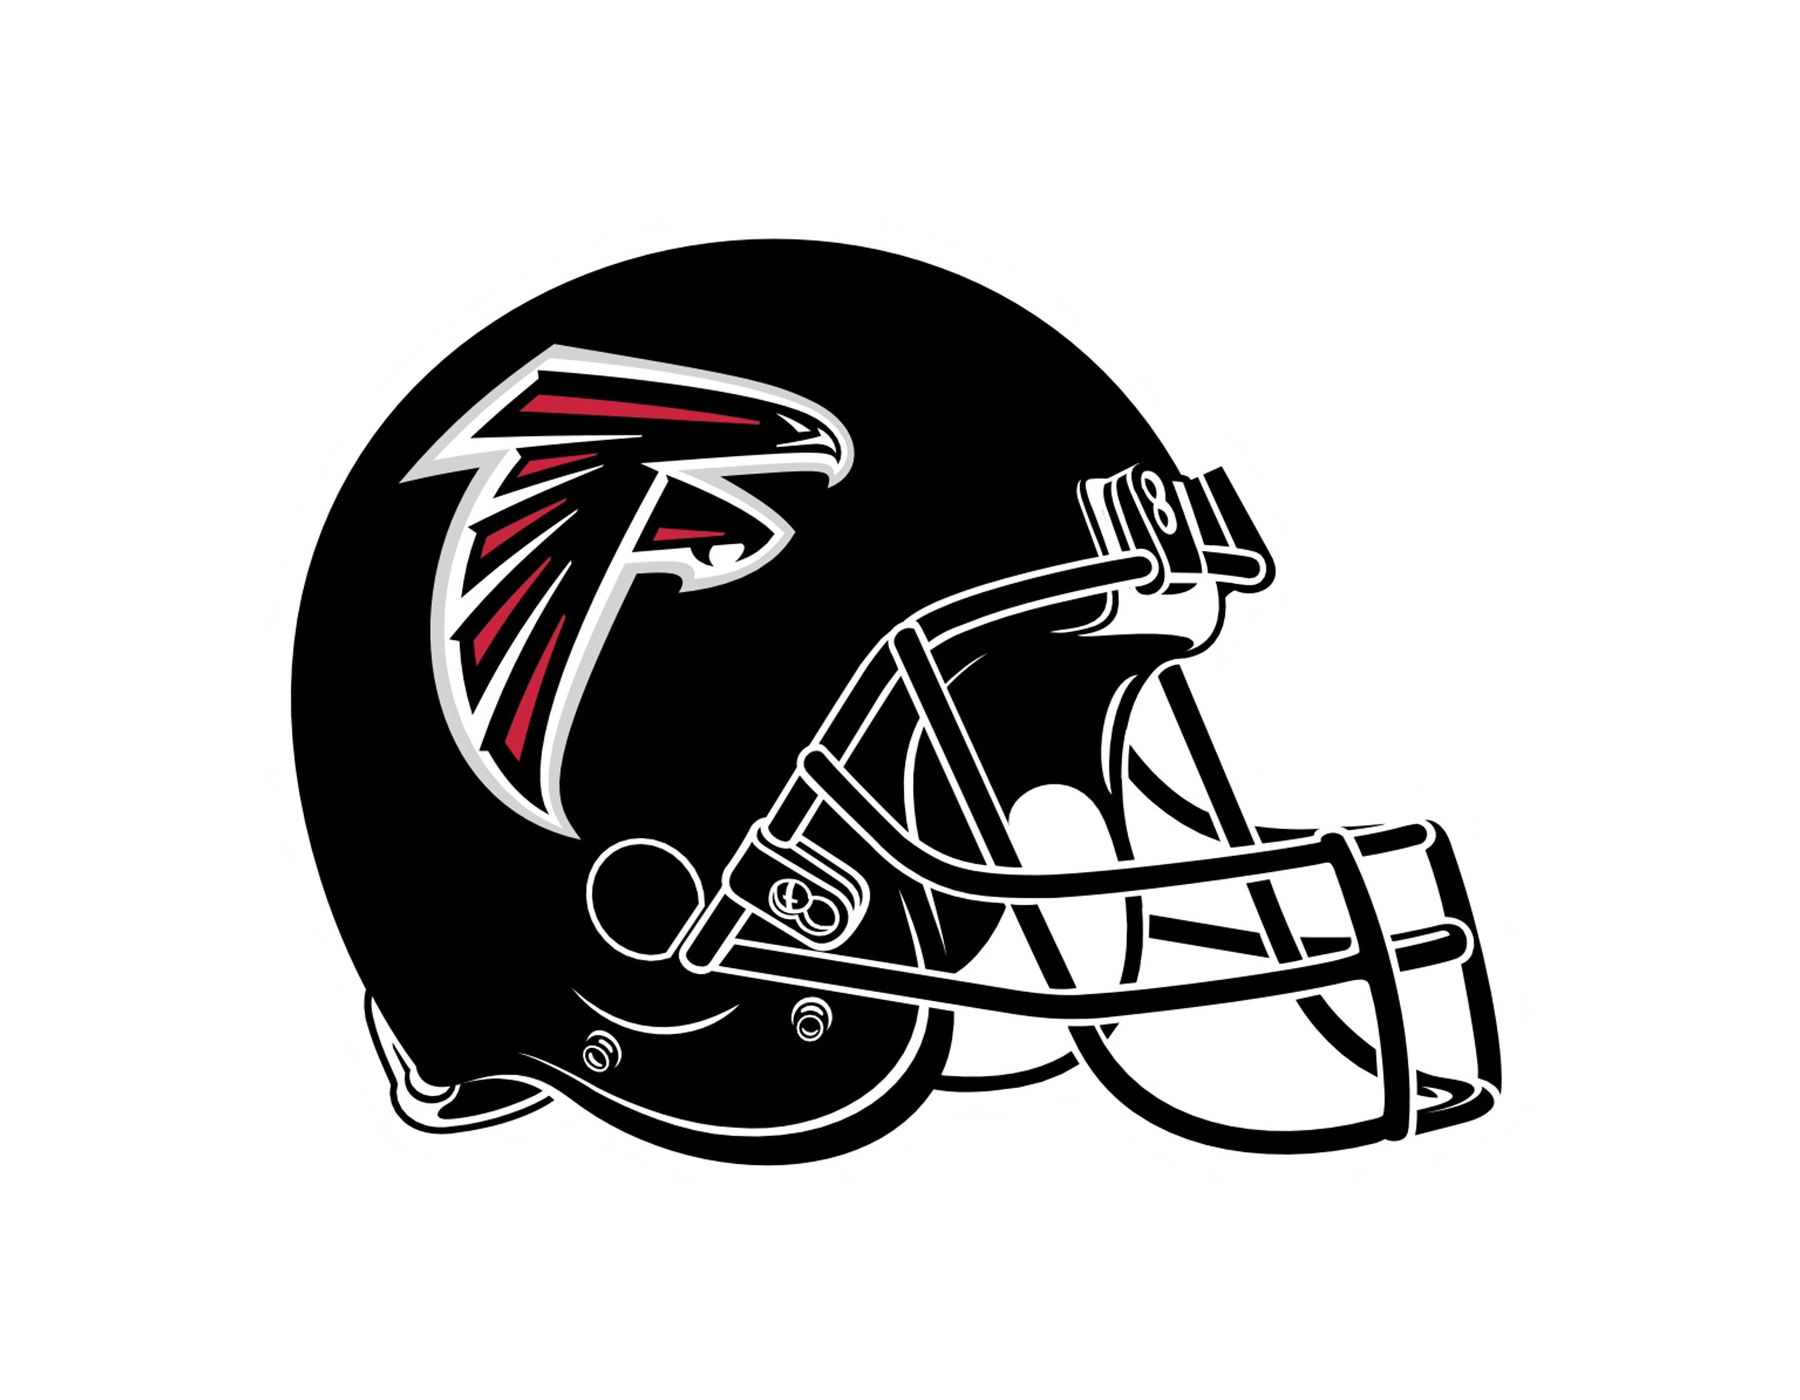 atlanta falcons logos atlanta falcons old logos atlanta logos falcons